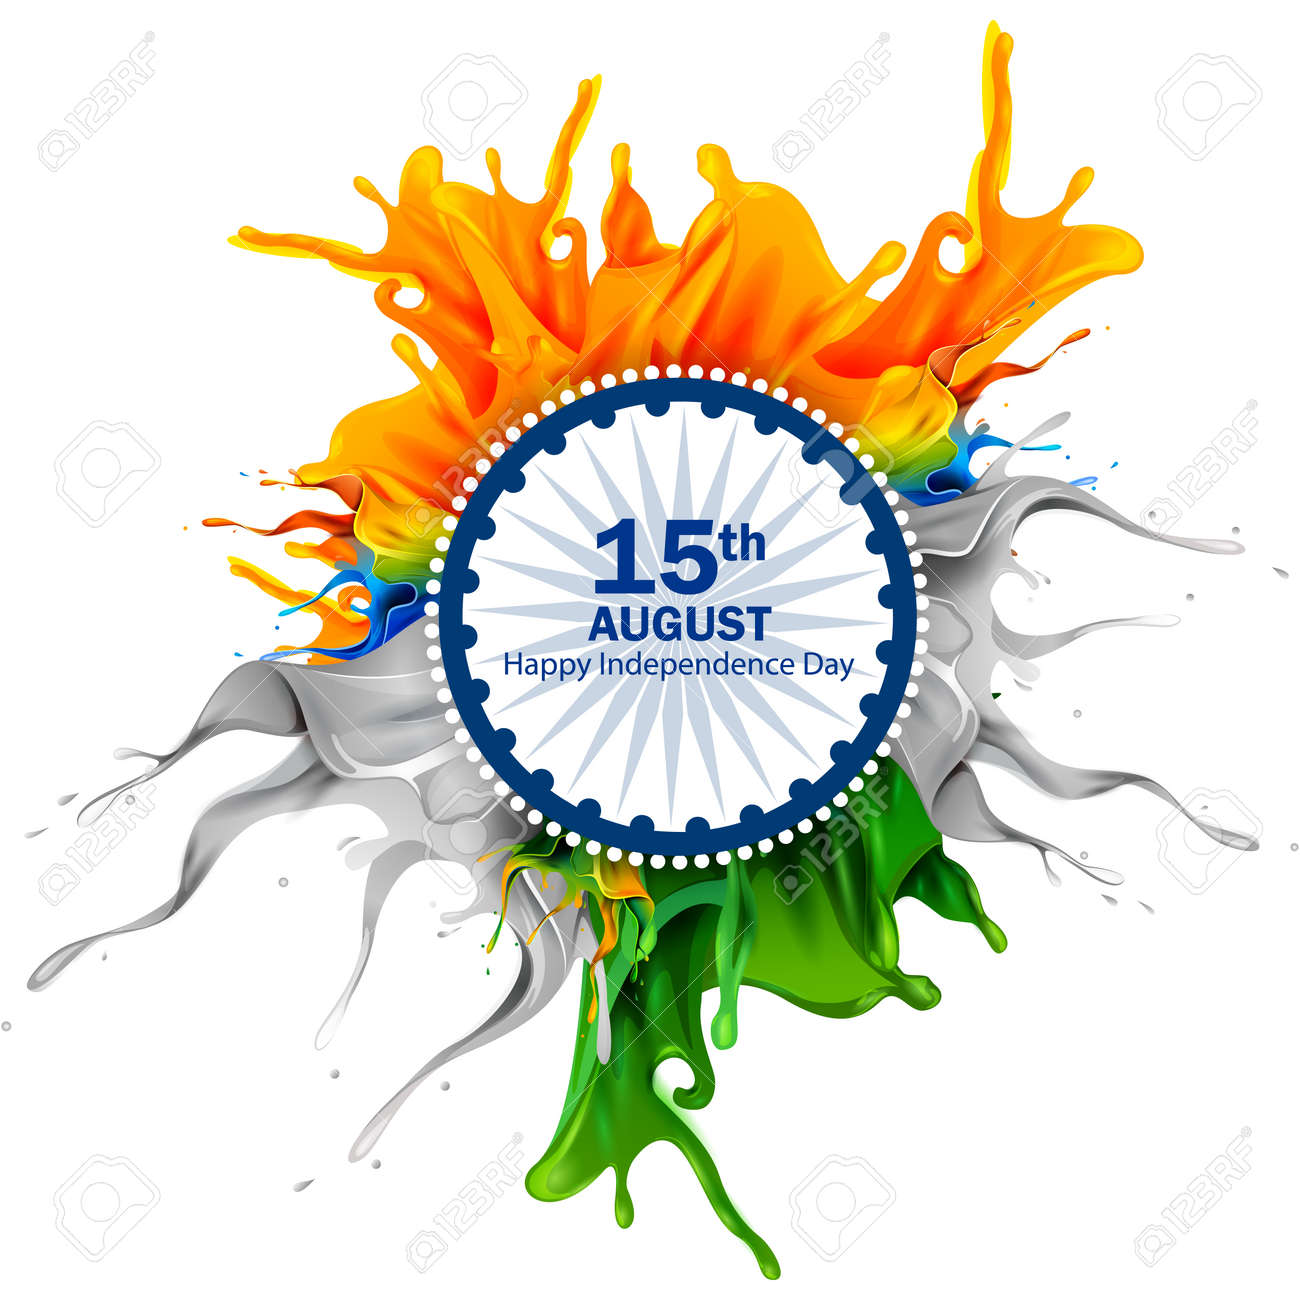 easy to edit vector illustration of splash of Indian Flag on Happy Independence Day of India background - 105875443